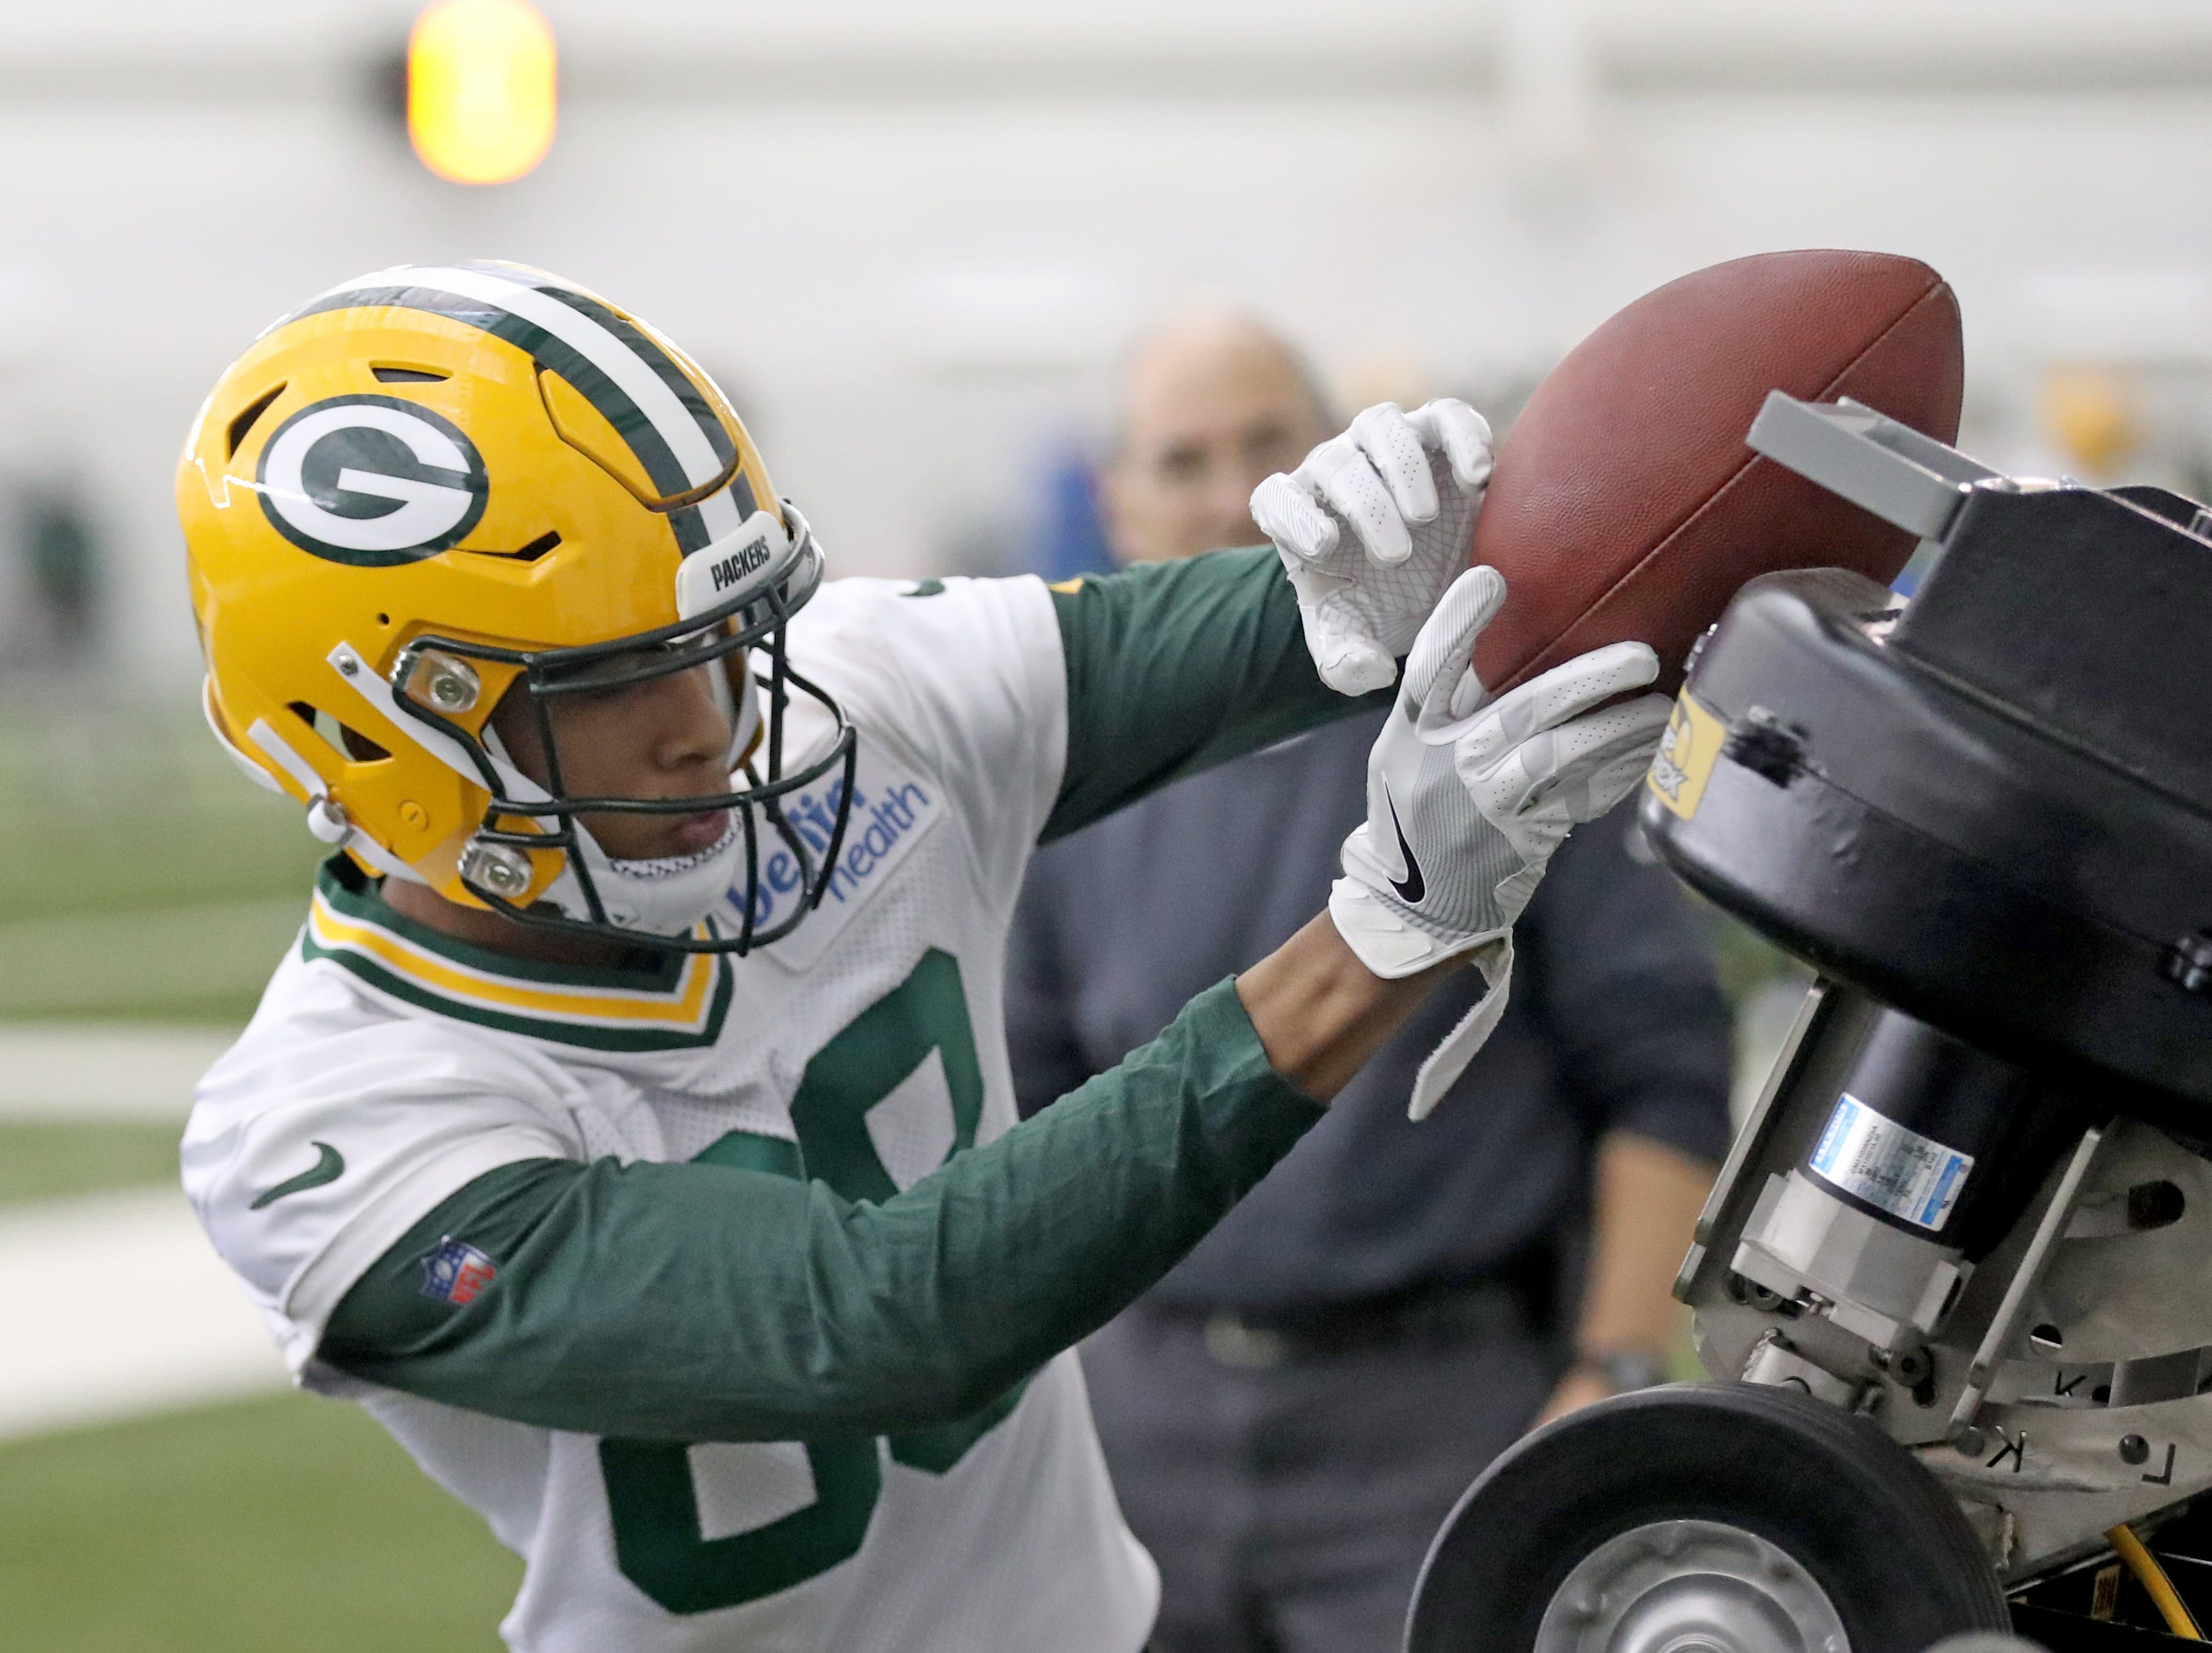 Green Bay Packers wide receiver Teo Redding during practice Wednesday, November 21, 2018 inside the Don Hutson Center in Ashwaubenon, Wis.